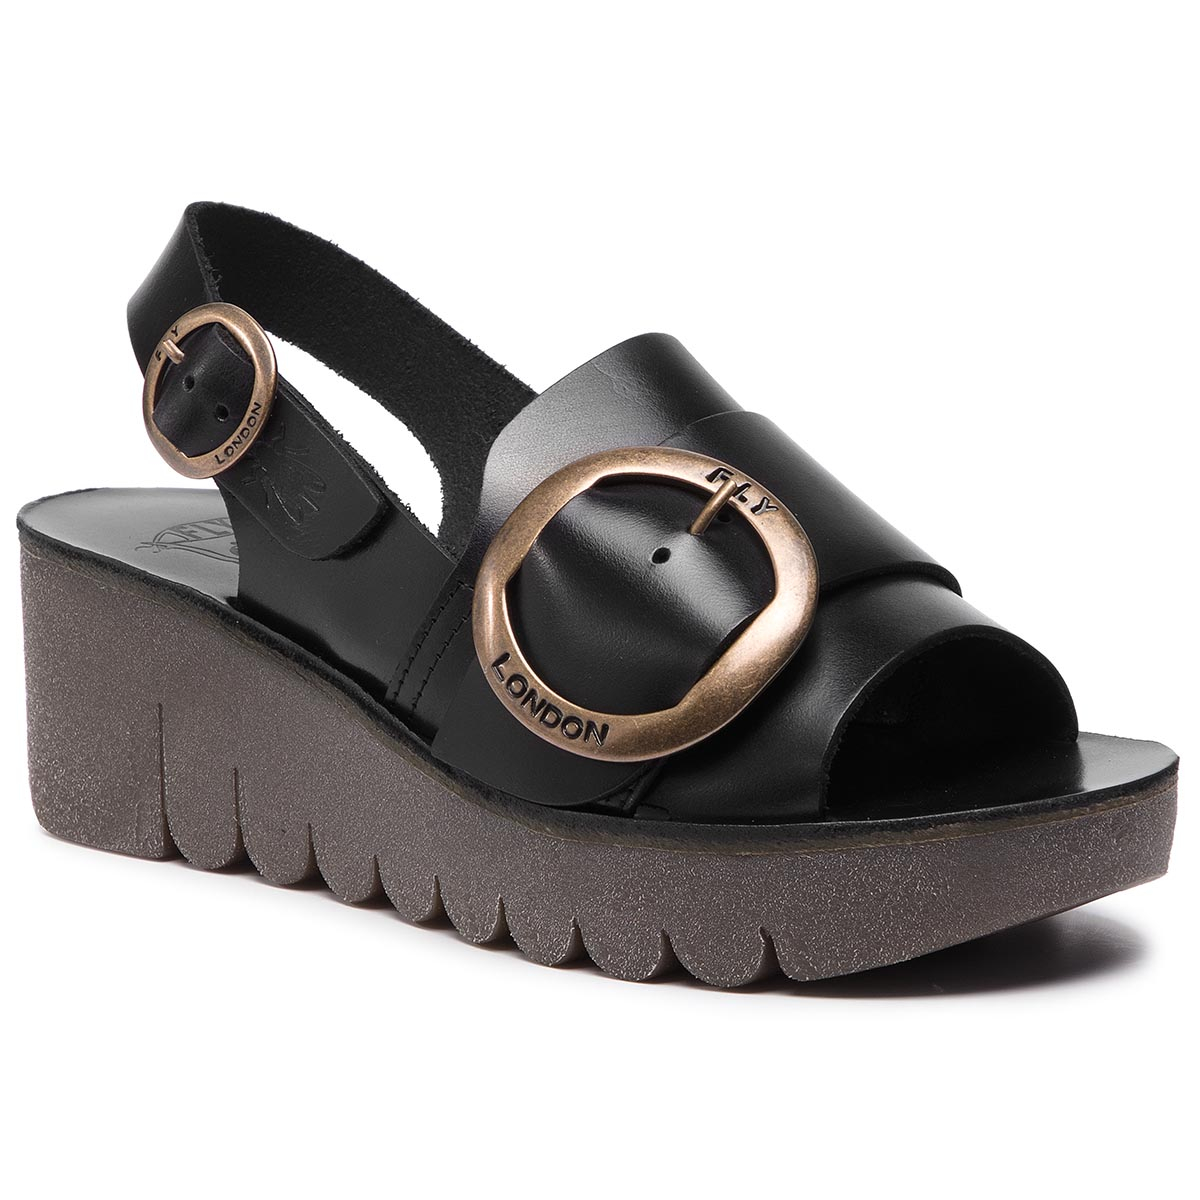 Sandály FLY LONDON - Yidifly P144190000 Black